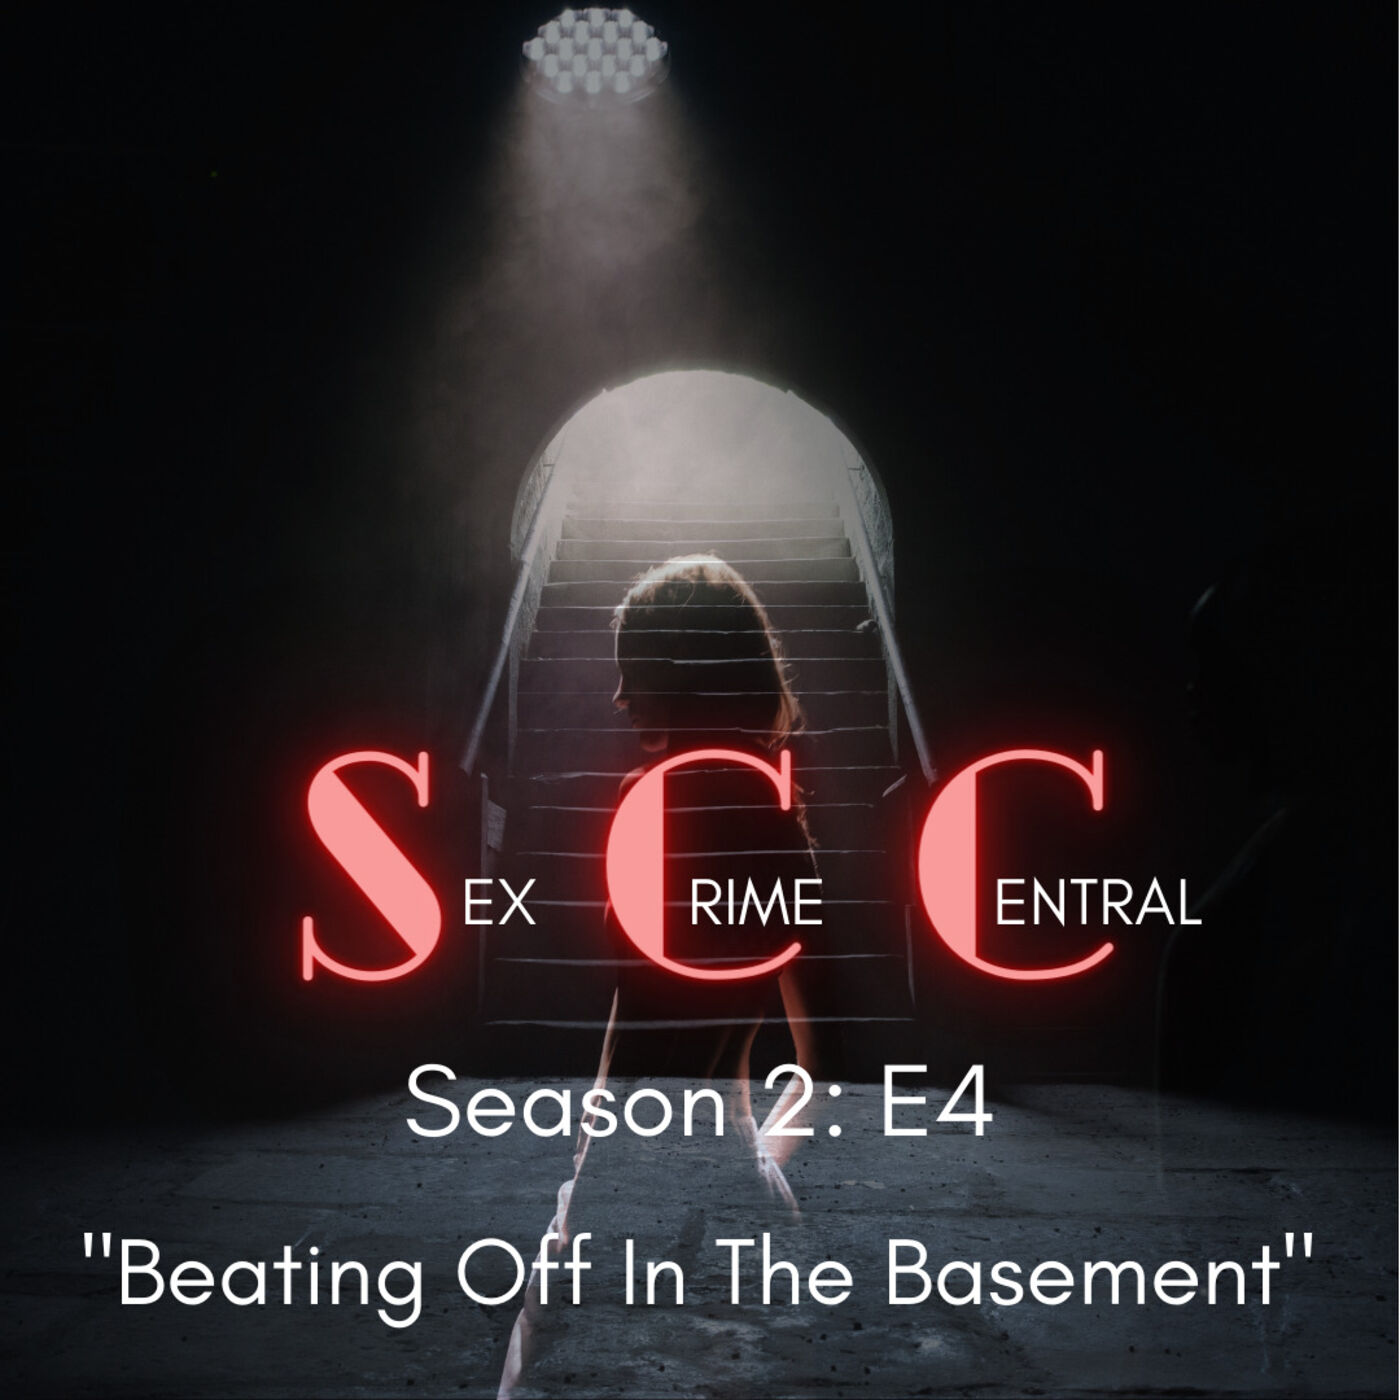 Beating Off In The Basement